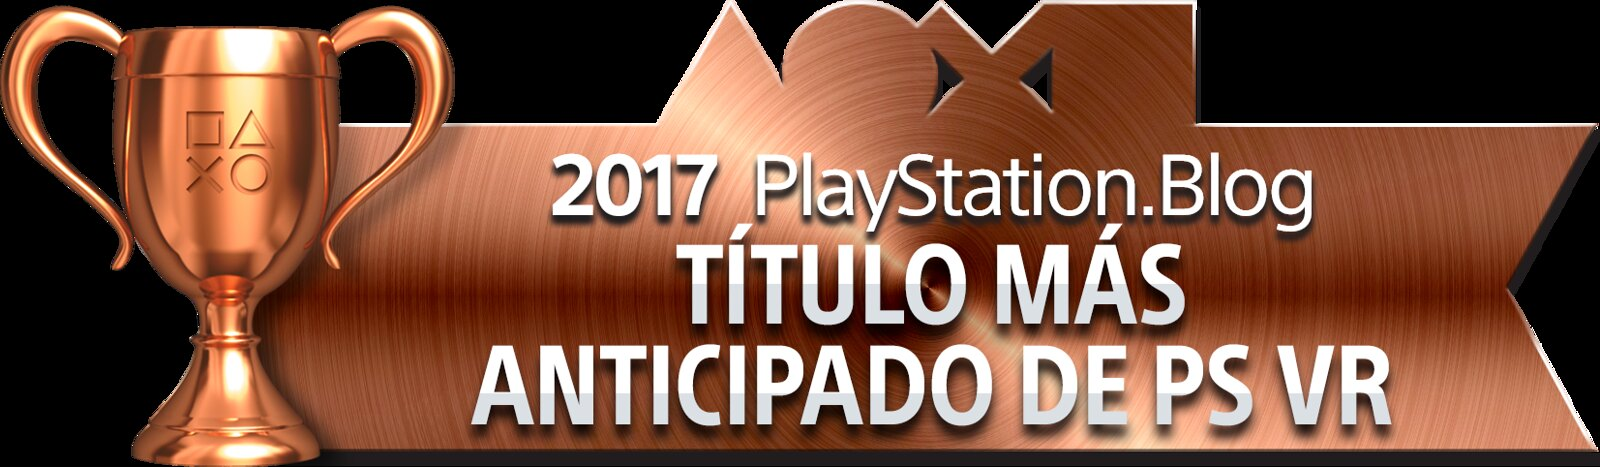 PlayStation Blog Game of the Year 2017 - Most Anticipated PS VR Title (Bronze)